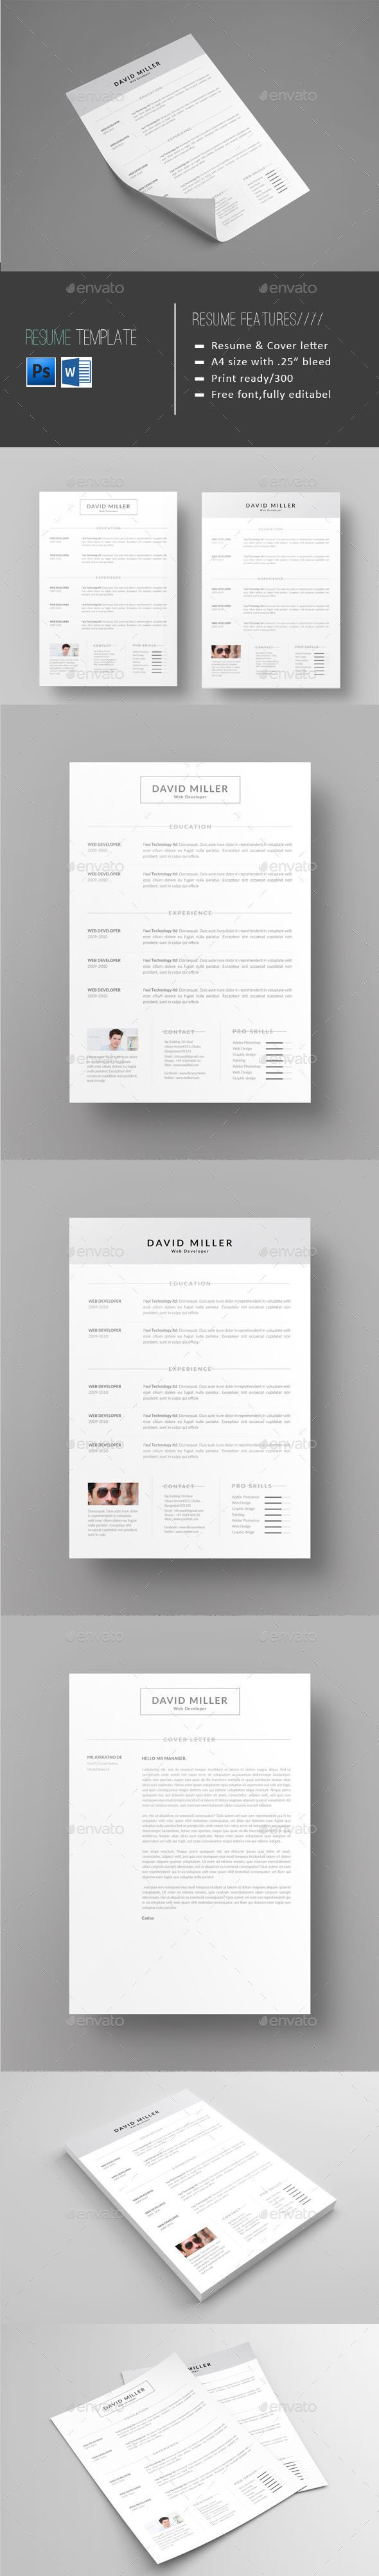 Textedit Resume Template Pin by Ux Design Mastery On Ux Design Resume